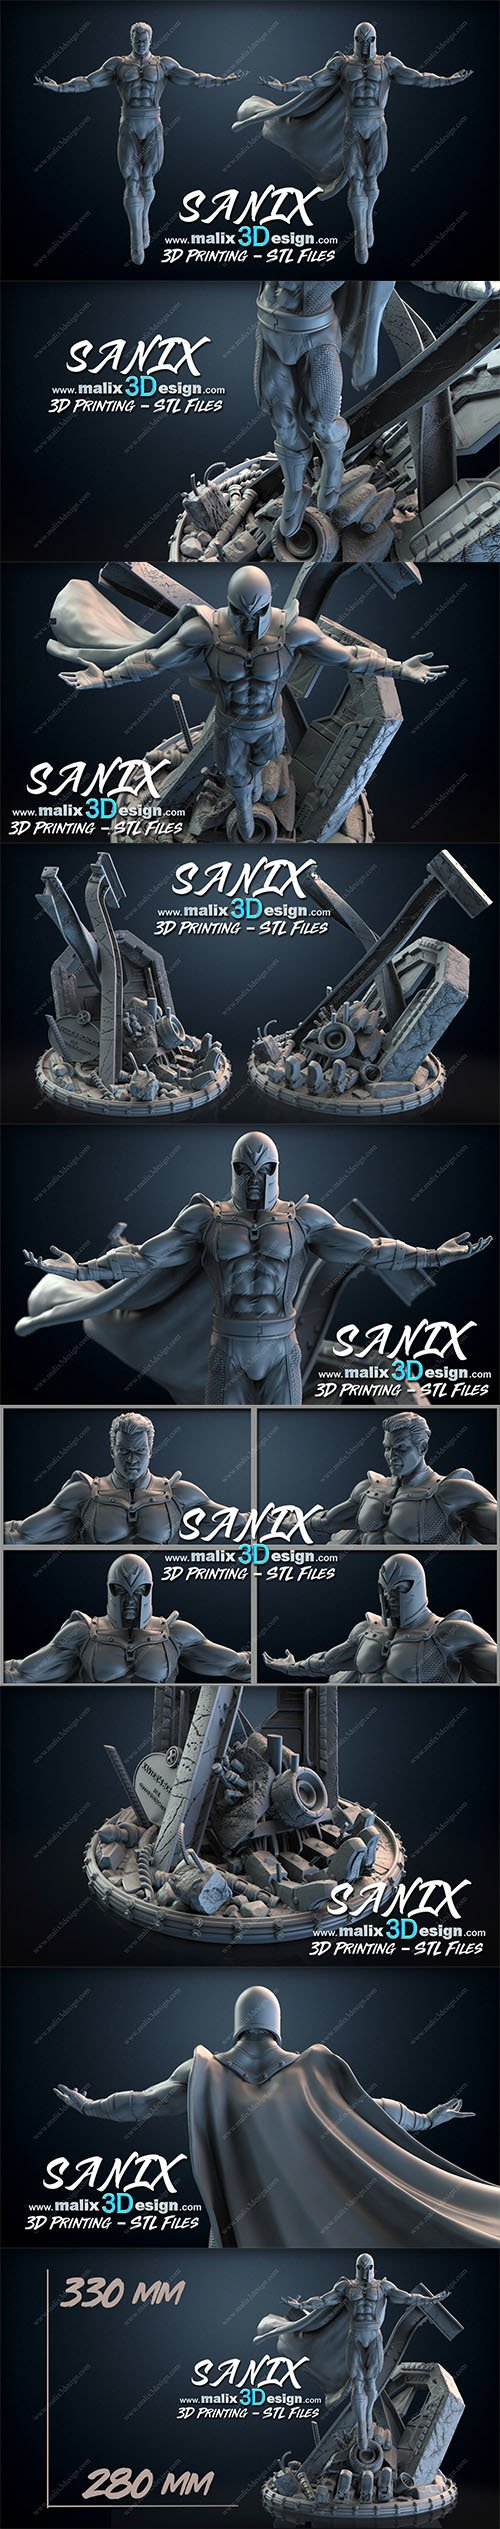 MAGNETO - STL Files for 3D Printing